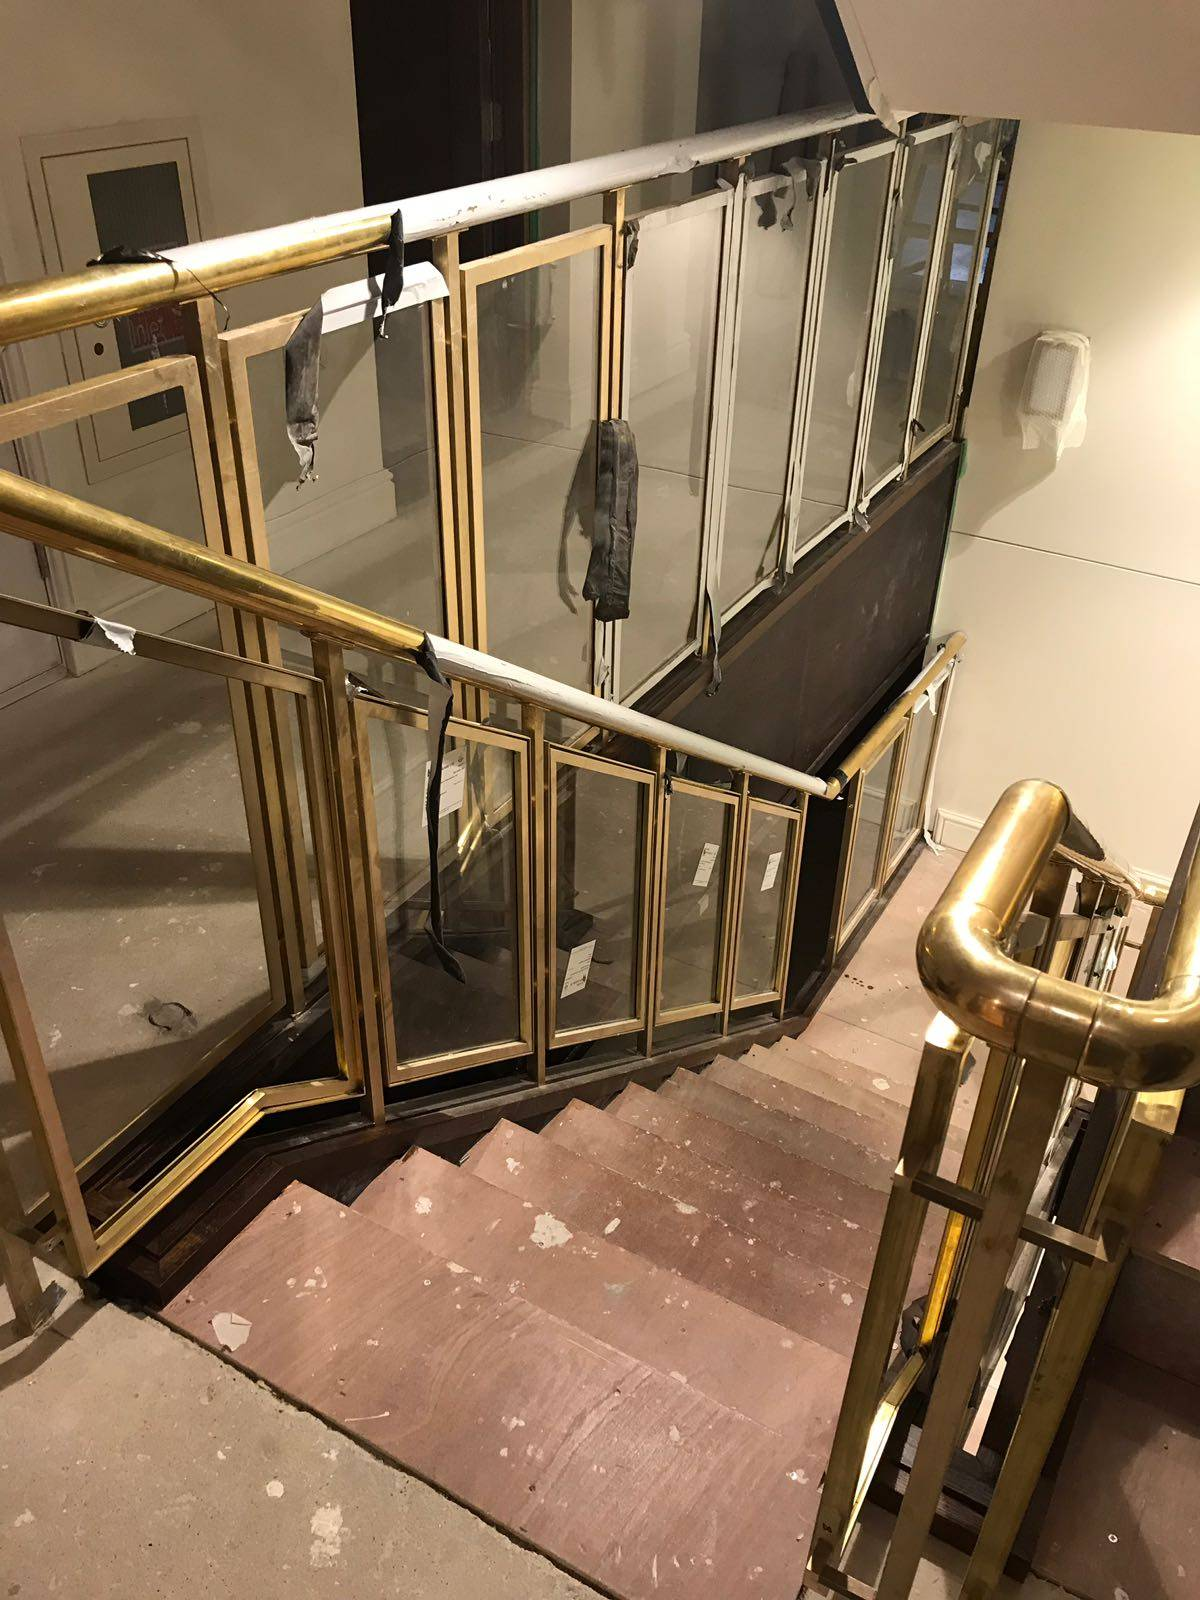 new wooden staircase, with brass stair rail and glass balustrade panels